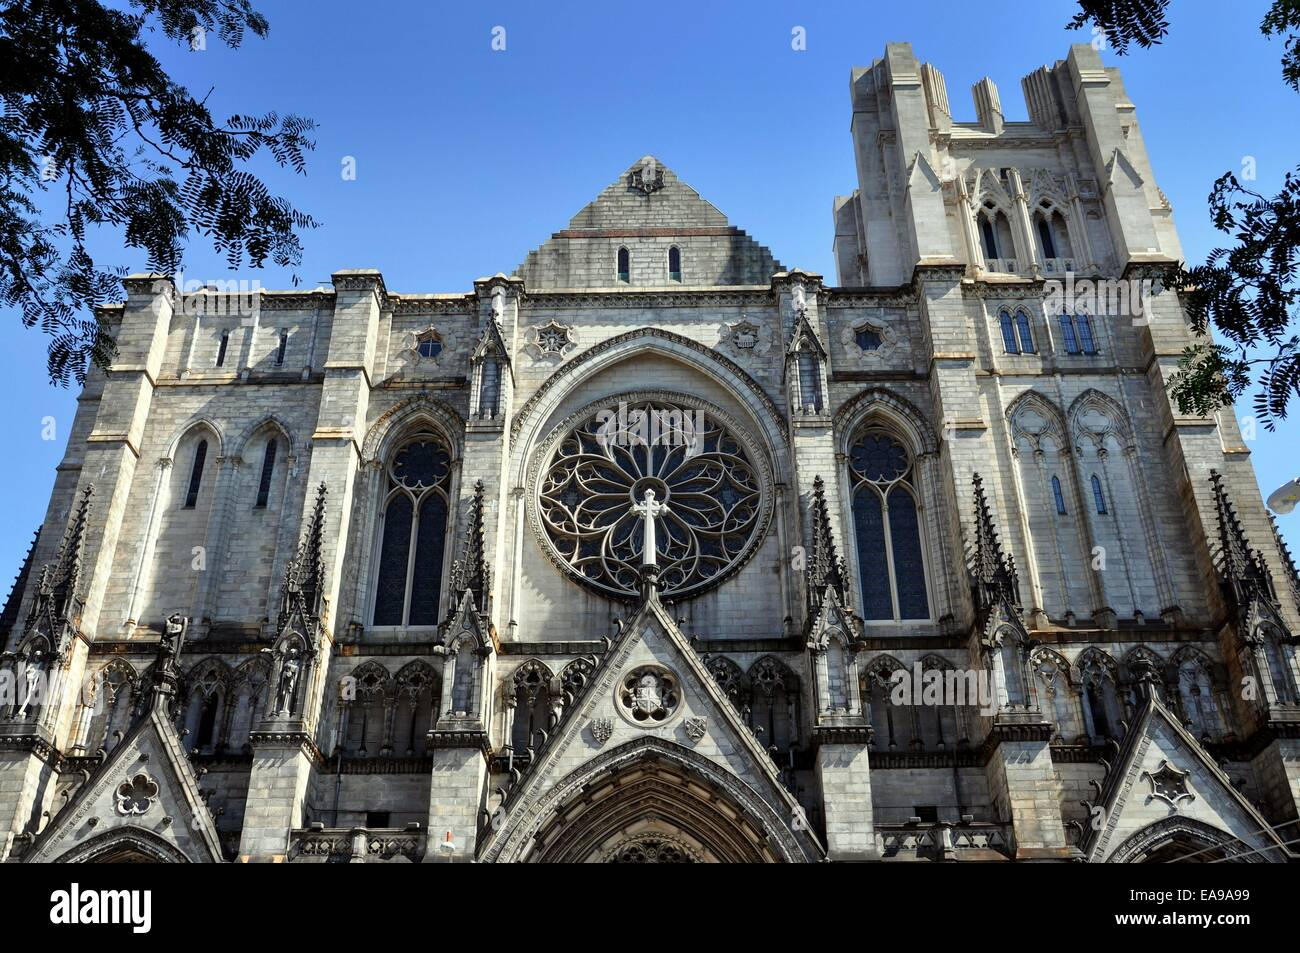 NYC:  The unfinished west front of the 1892 neo-gothic Cathedral Church of St. John the Divine - Stock Image